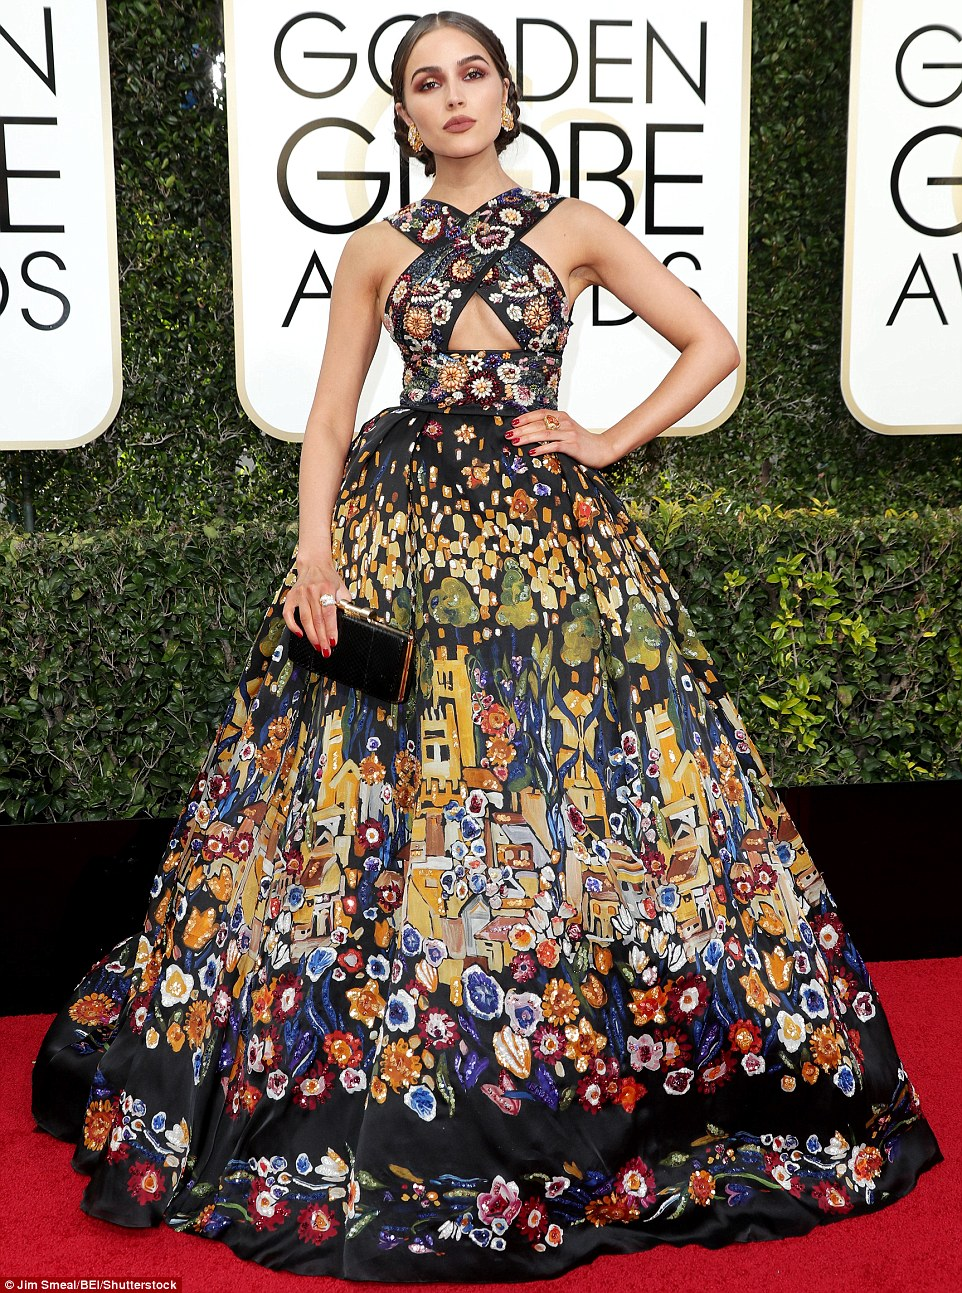 3bf721c400000578-4100390-a_real_eyeful_olivia_culpo_looked_as_though_she_had_ripped_down_-m-114_1483927534747